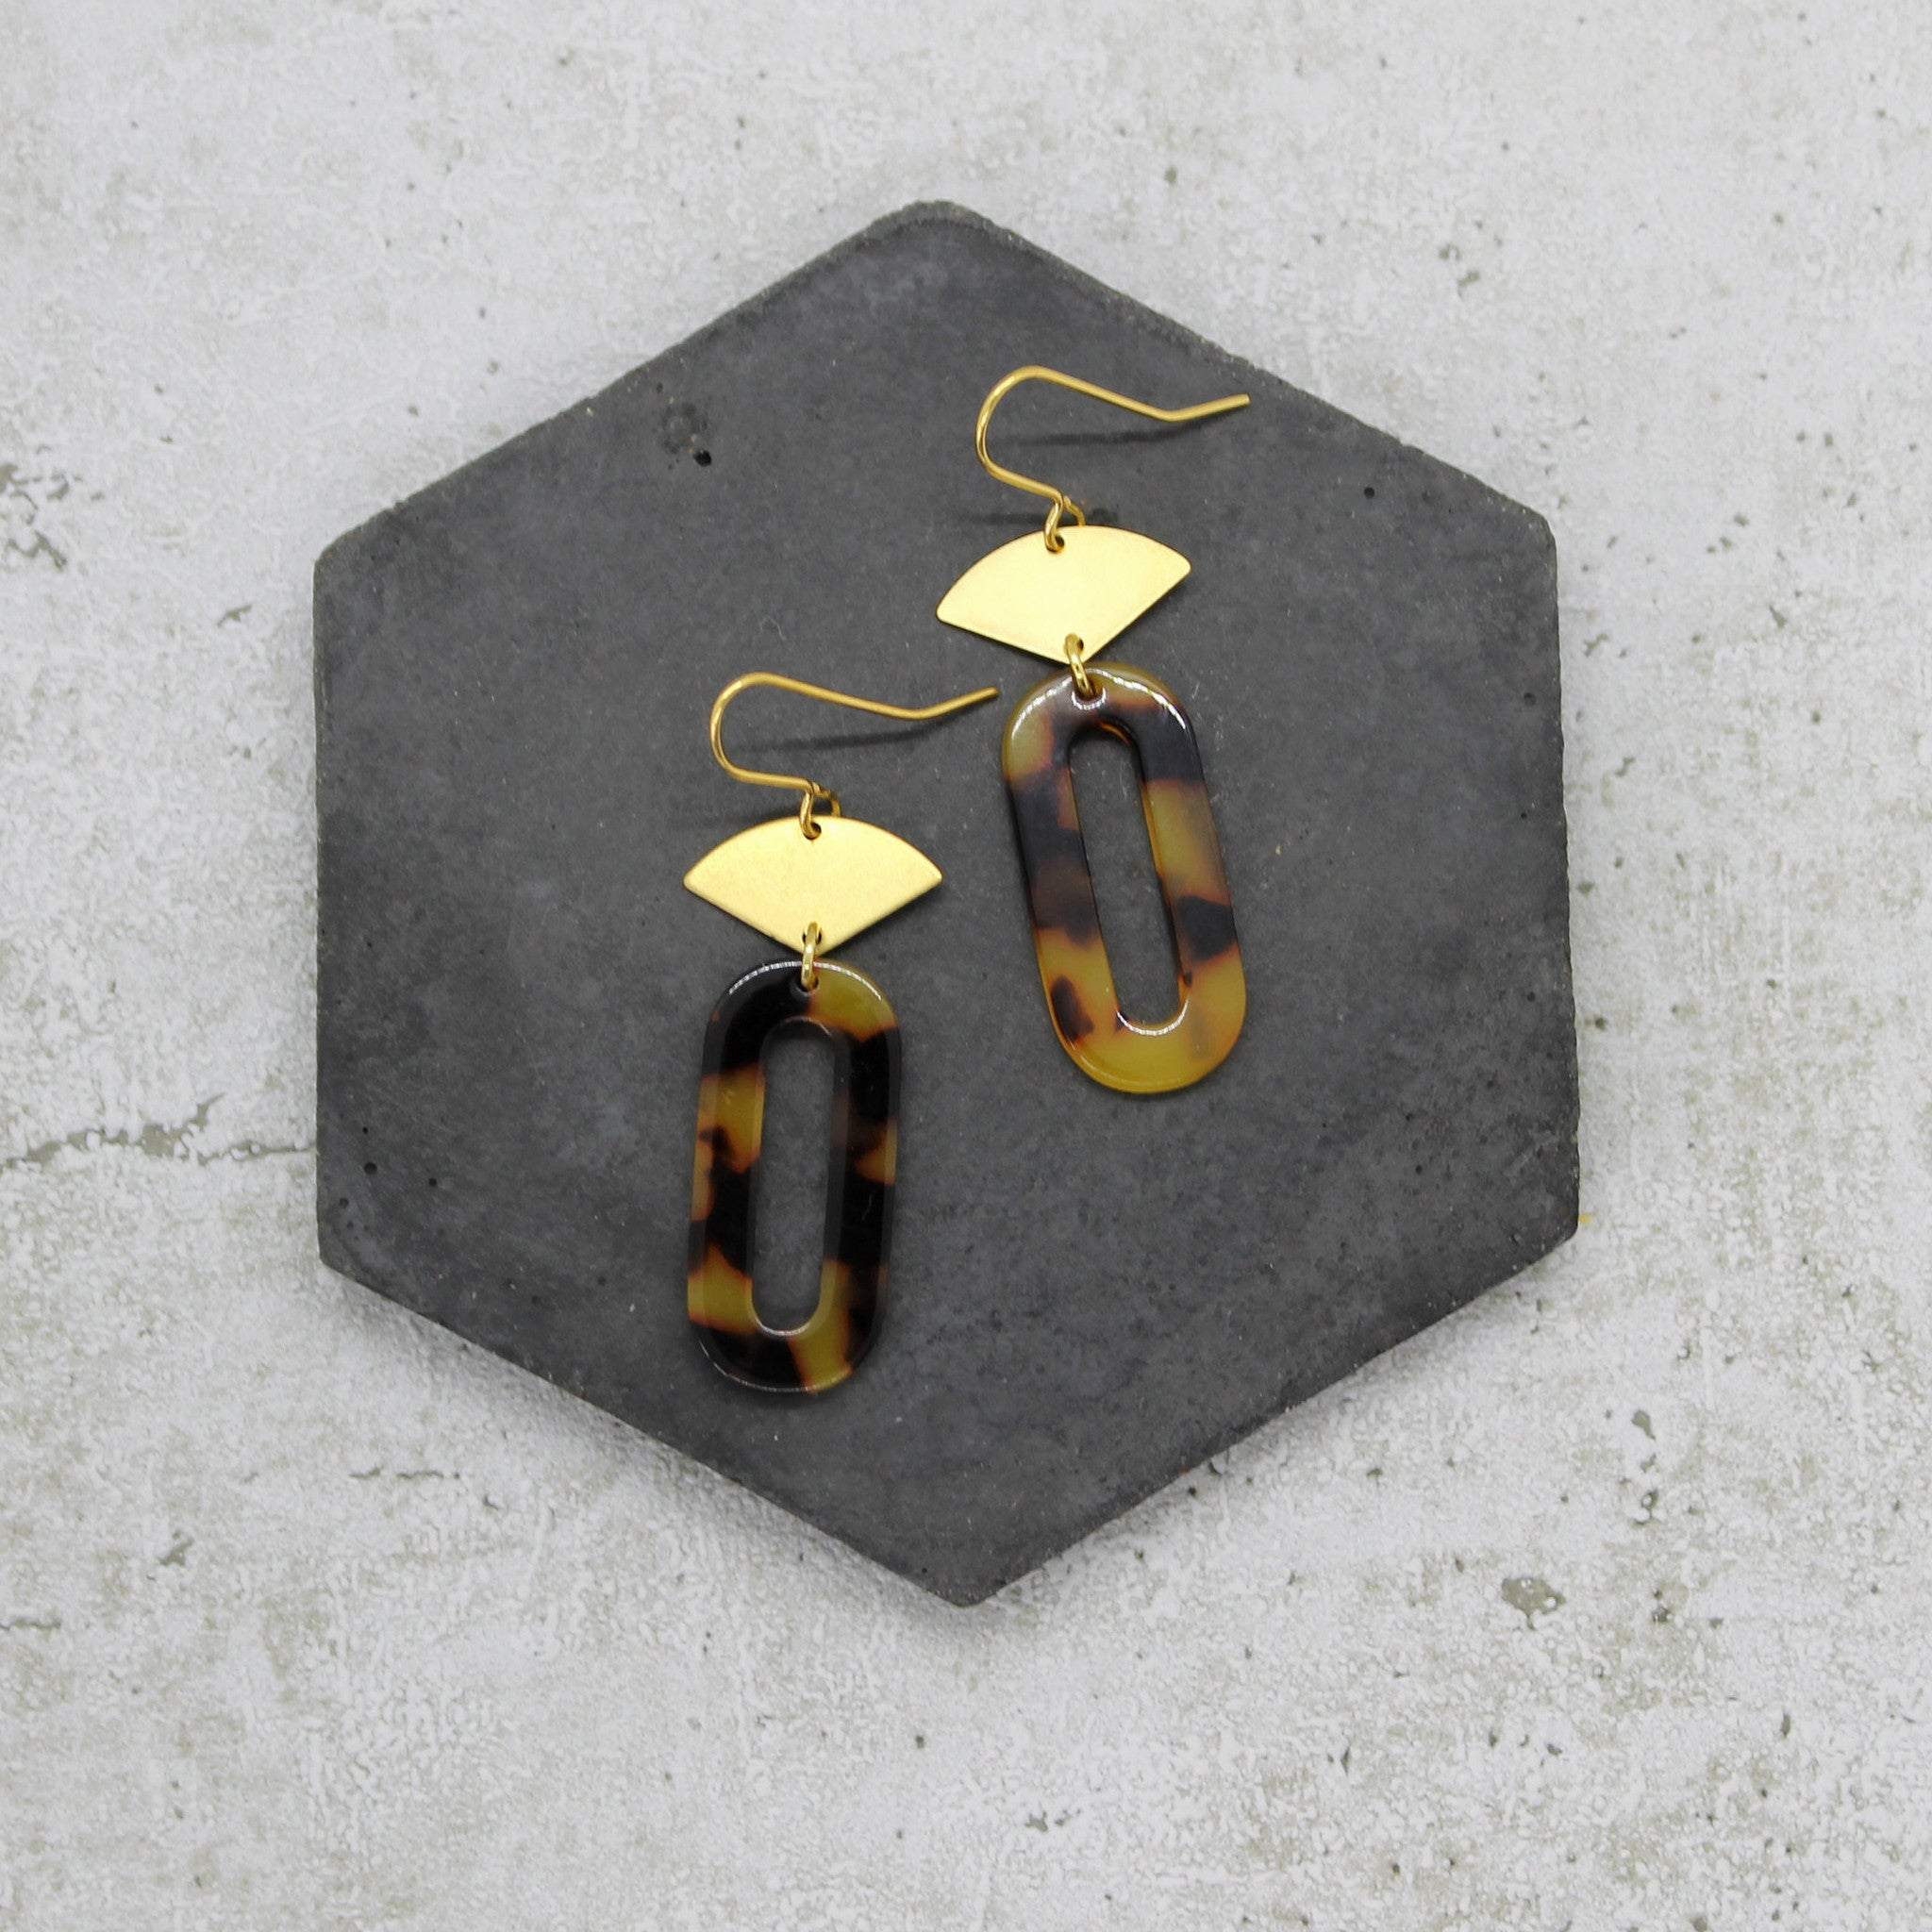 Acrylic drop earrings - Mara studio